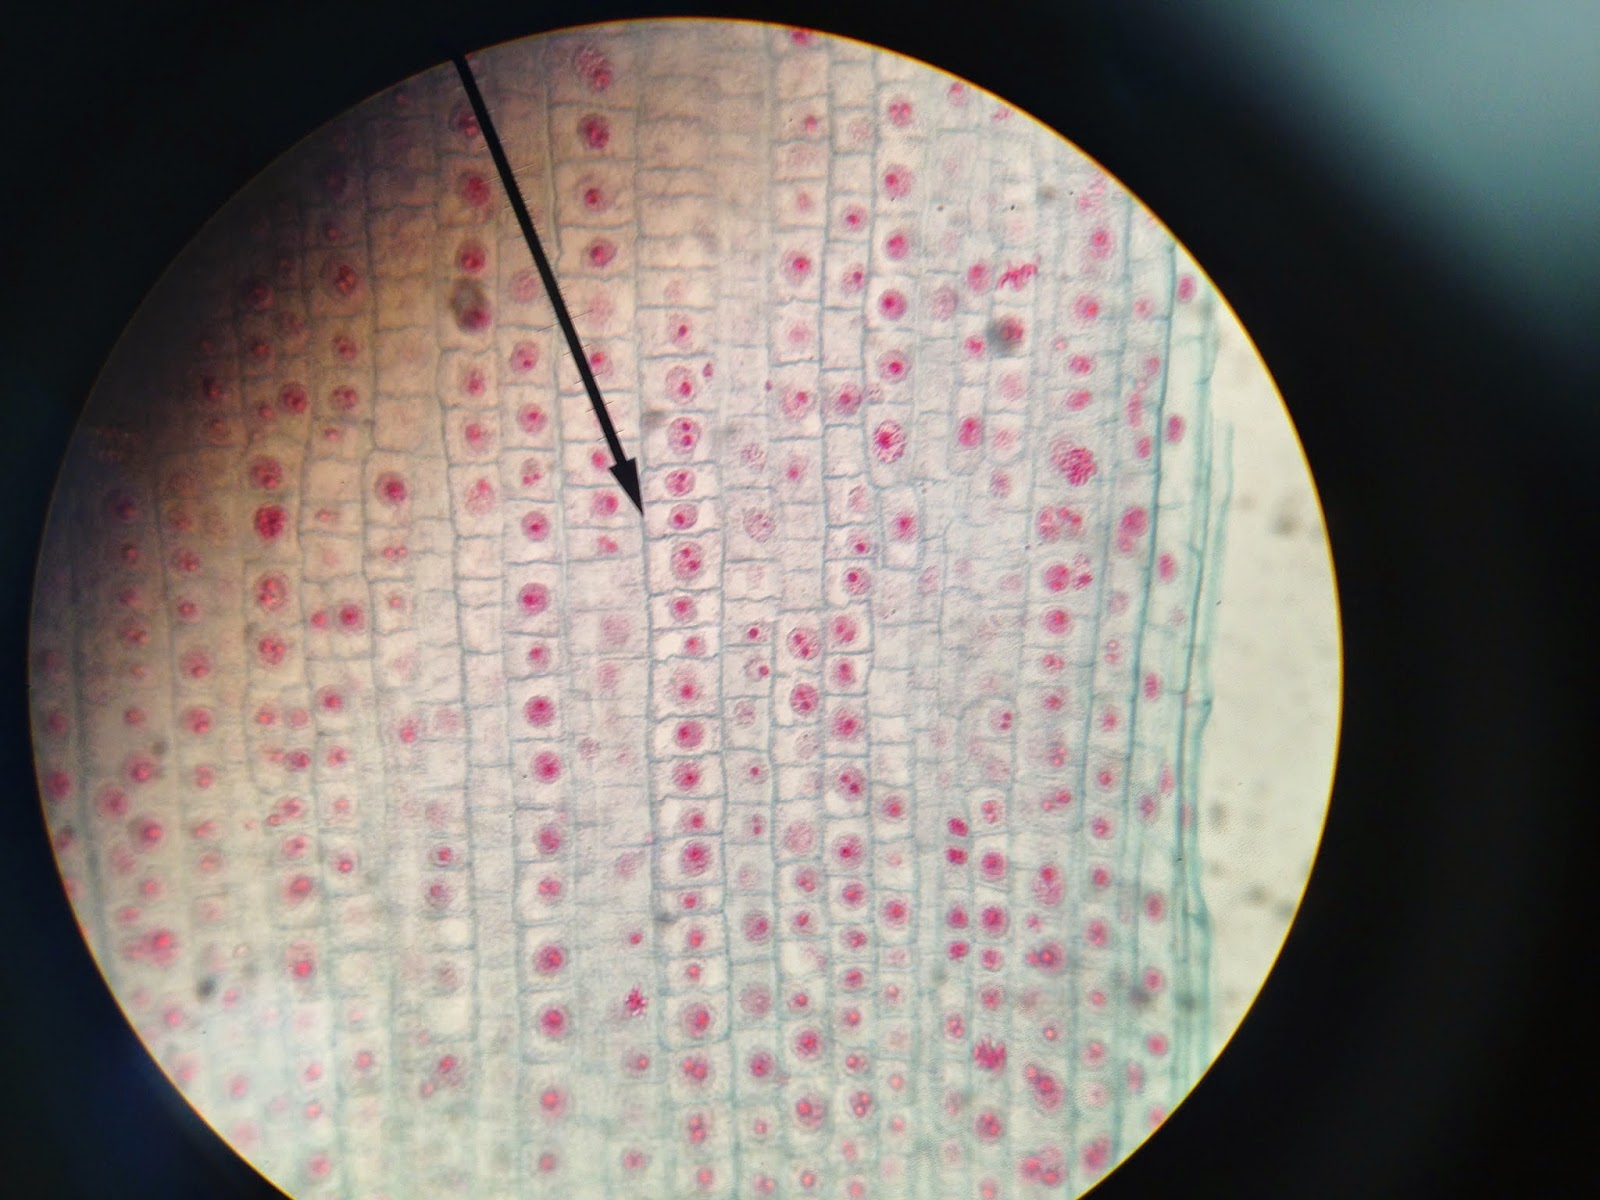 onion root tip diagram 2 pin flasher relay wiring biology honor labs mitosis lab report